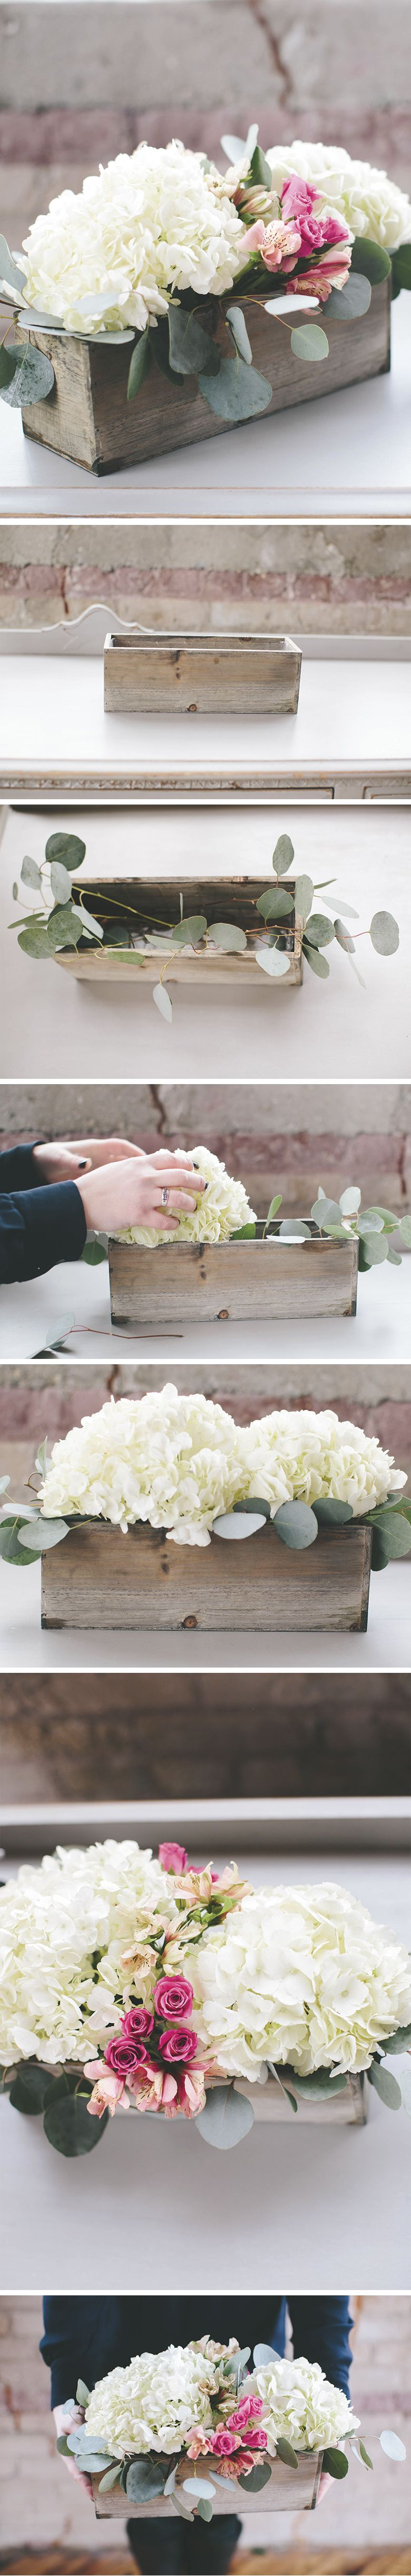 How to a modern diy hydrangea centerpiece that anyone can